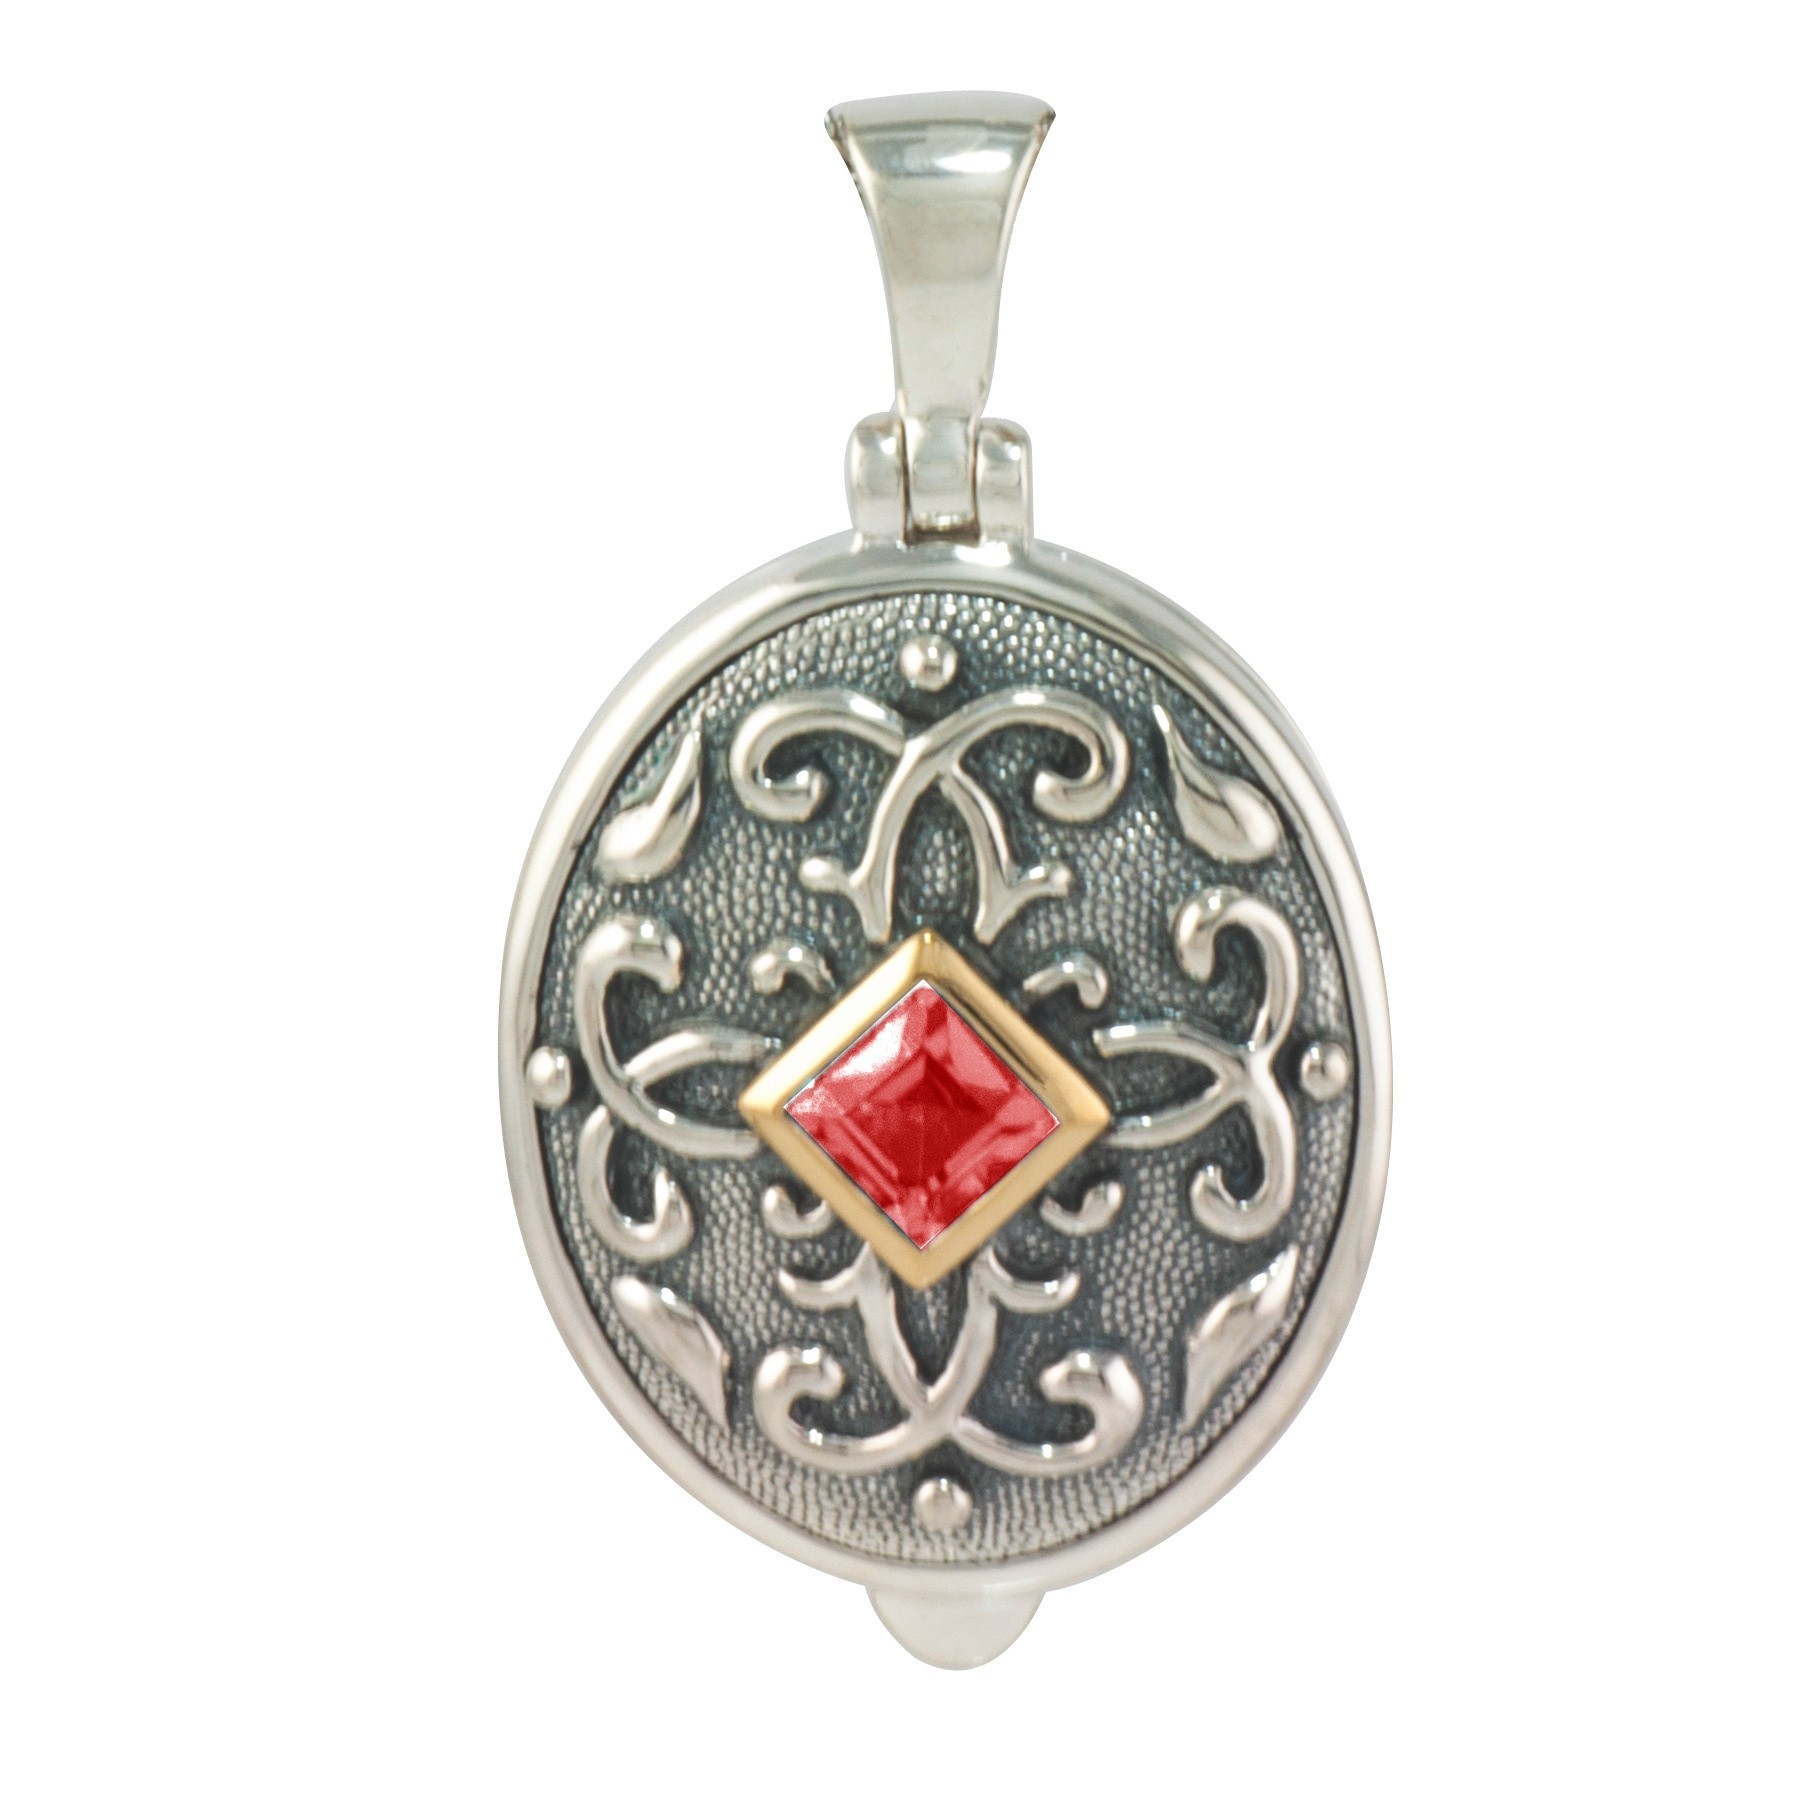 with silverware locket clear newbridge product stones lockets o hara maureen